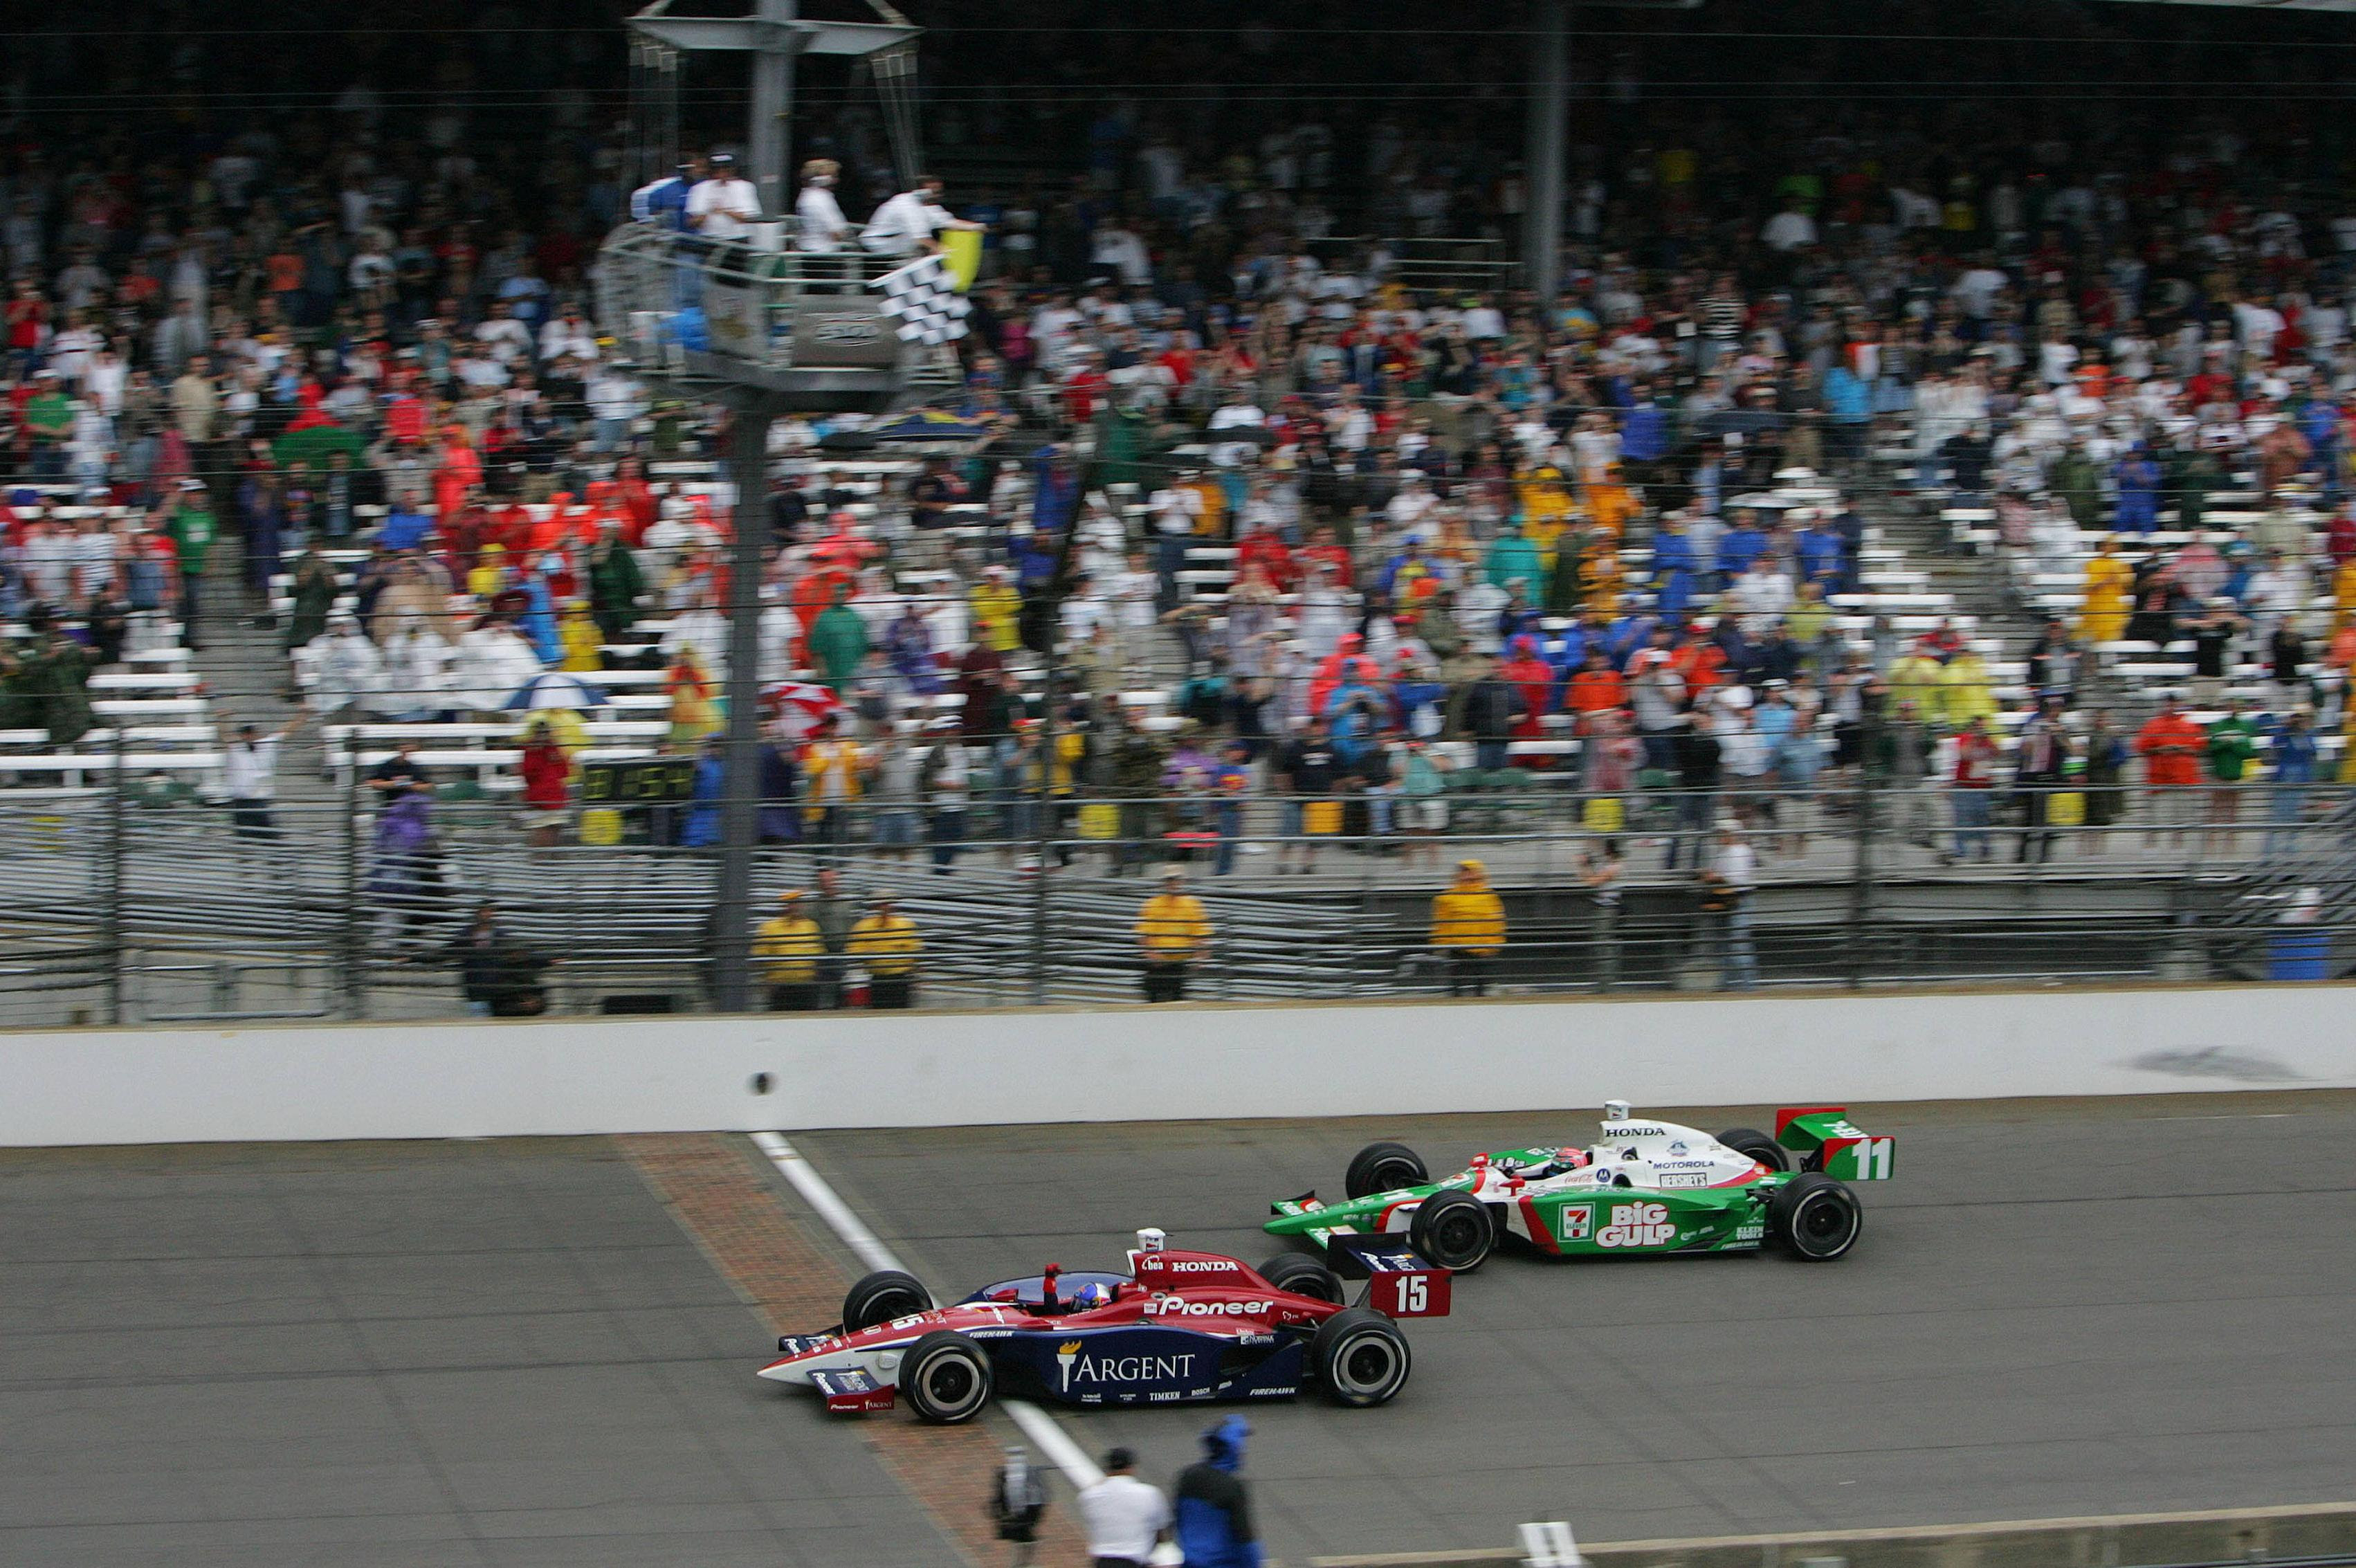 Buddy Rice Coming Across The Line To Win The 2004 Indy 500 [3405x2266]